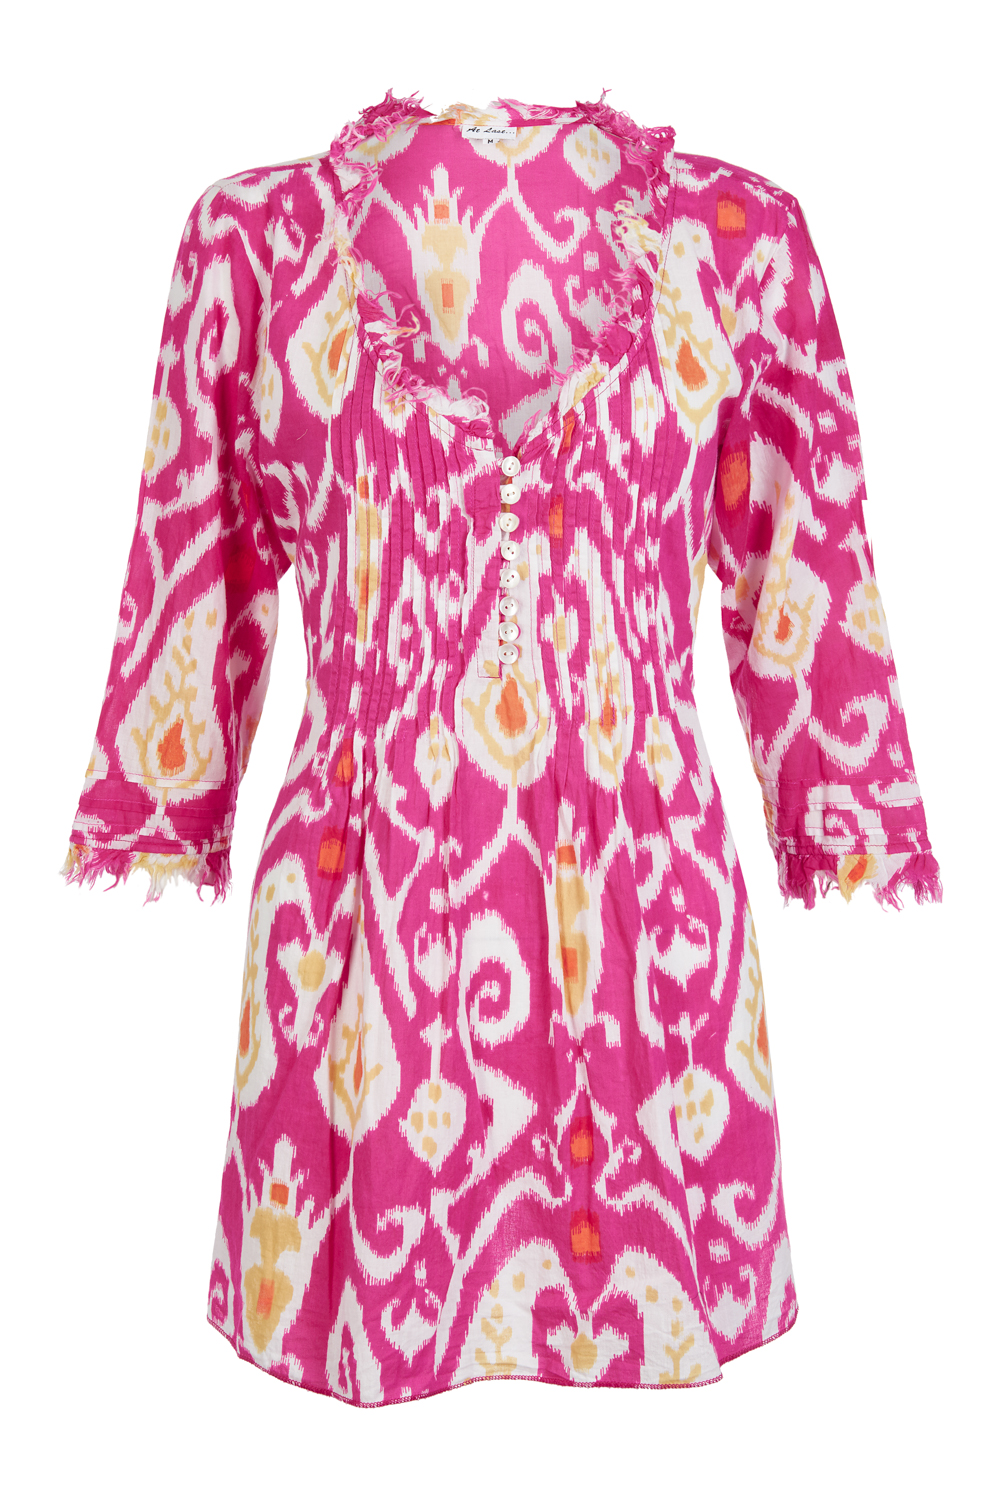 At Last Sophie - Pink Ikat